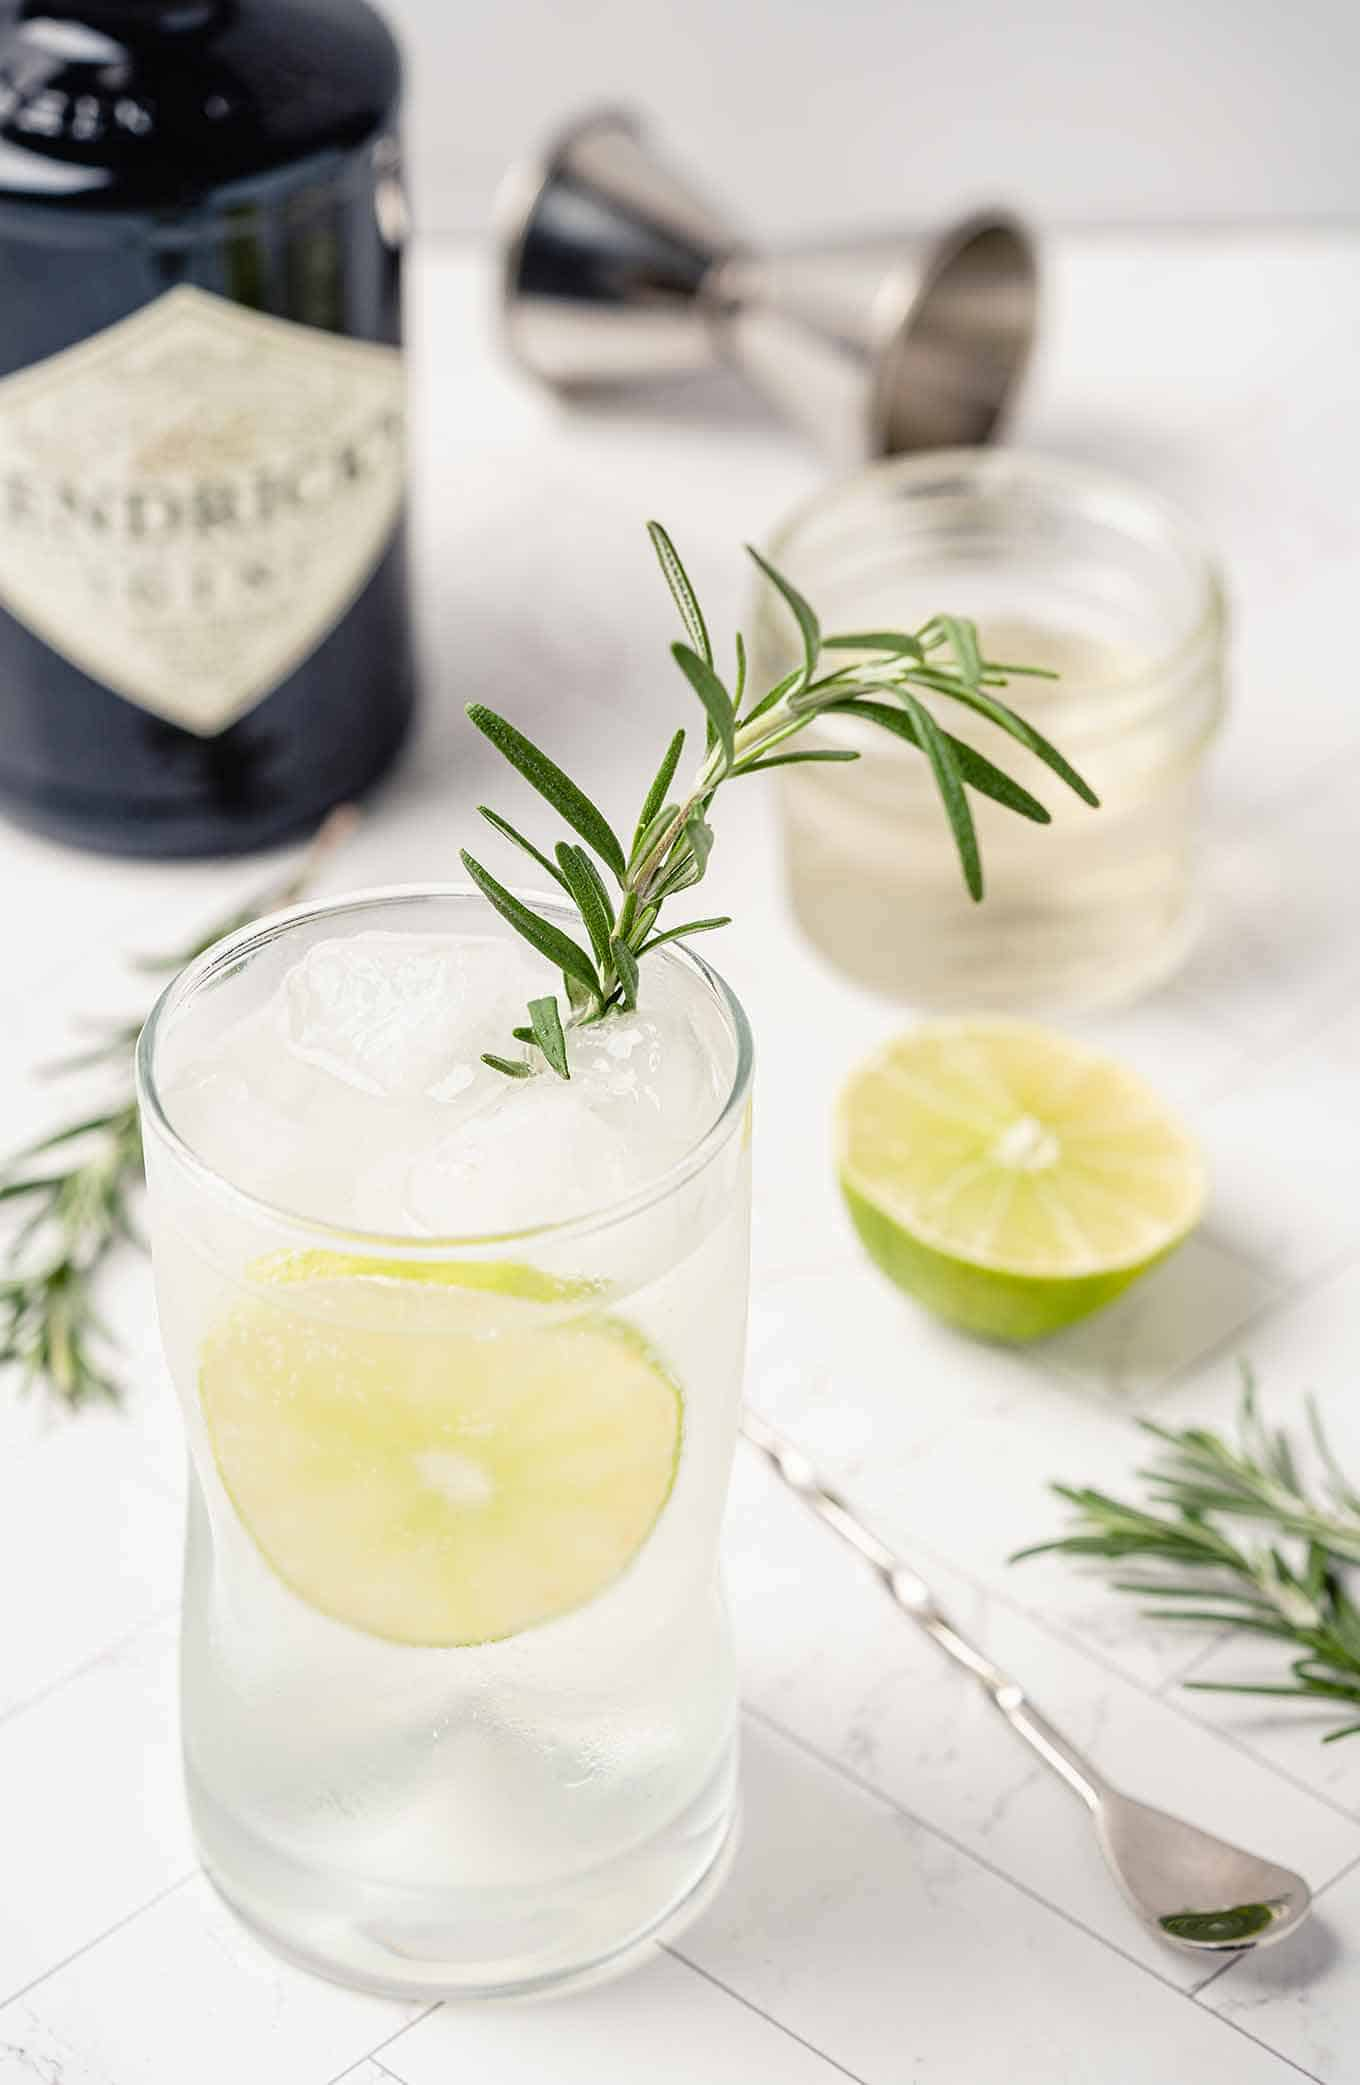 Rosemary gin and tonic garnished with lime and fresh rosemary, extra ingredients in the background.